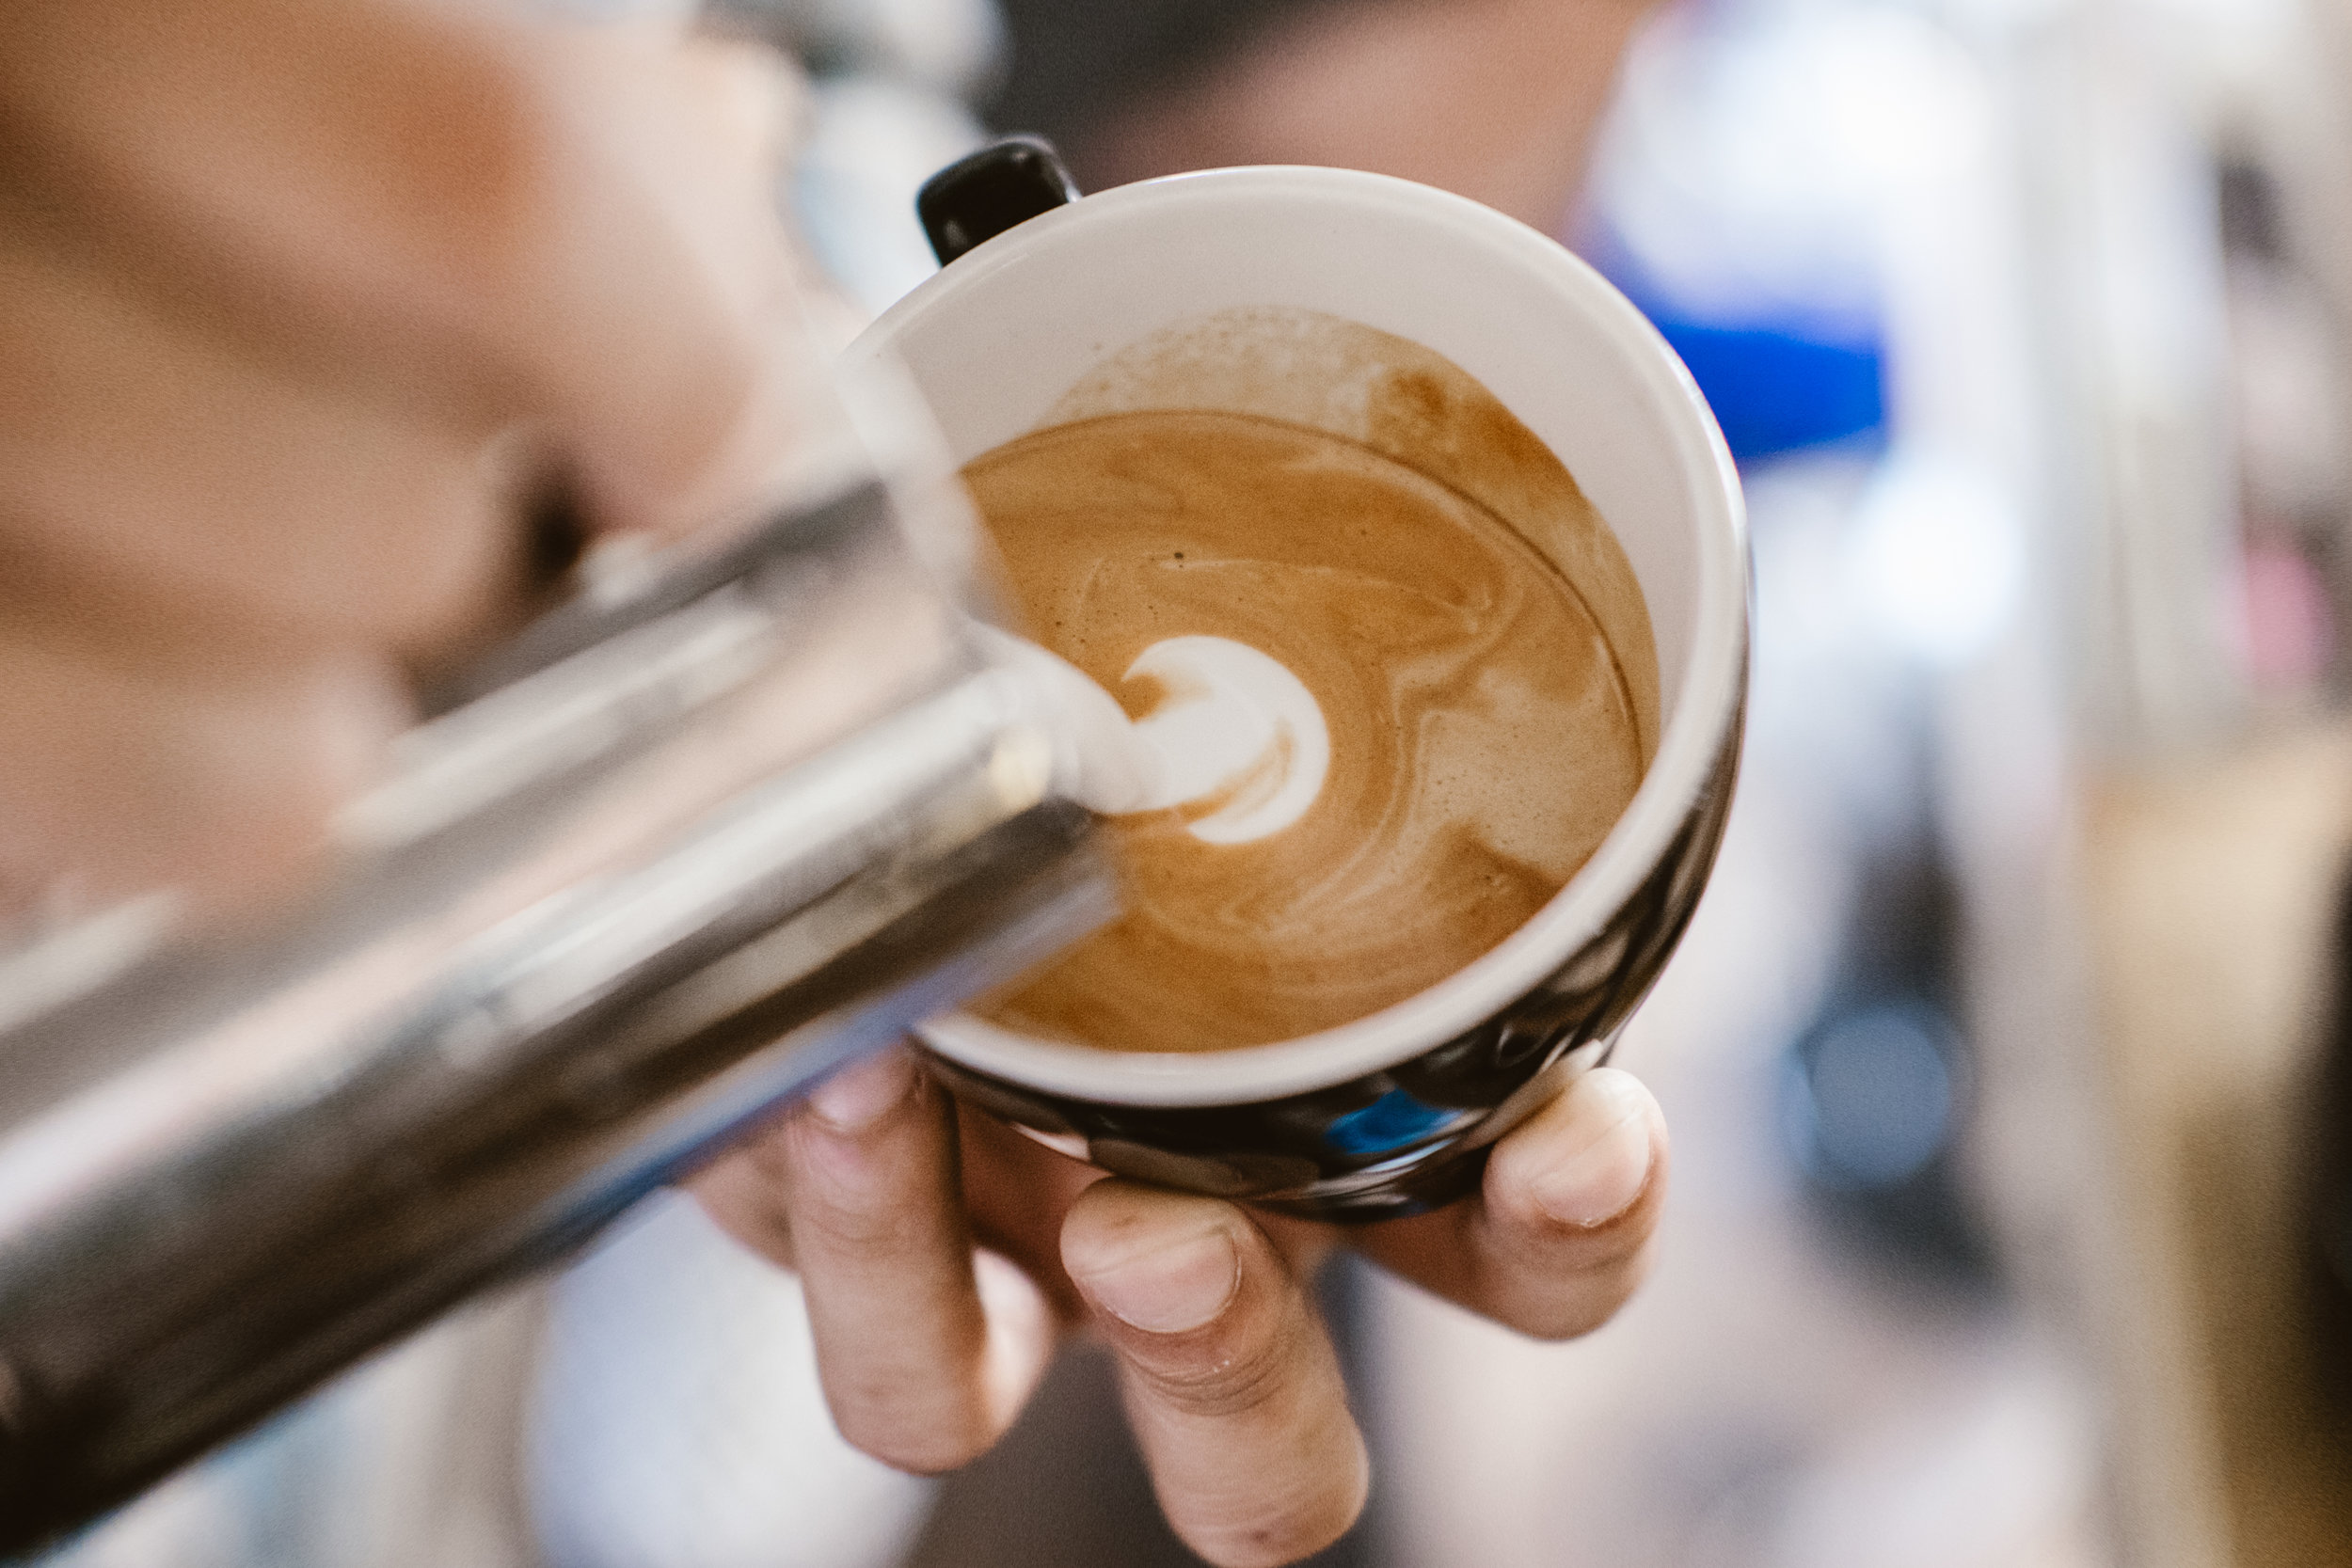 Espresso fundamentals & milk steaming workshop - For home baristas and avid espresso based coffee drinkers. This workshop is for anyone wanting to learn the basics of using an espresso machine.Time: Thursdays, 2:00pm -5:00pmDuration: 3 HoursClass Size: 1-4 participantsFee: 5000php | personThis workshop focuses on the skills and knowledge needed to pull a proper espresso shot and milk steaming which is the fundamental foundation needed to prepare a variety of coffee beverages.What We Learn:· Ideal extraction and techniques· Setting up and maintaining an espresso machine· Steaming and pouring milk· Tasting and evaluation